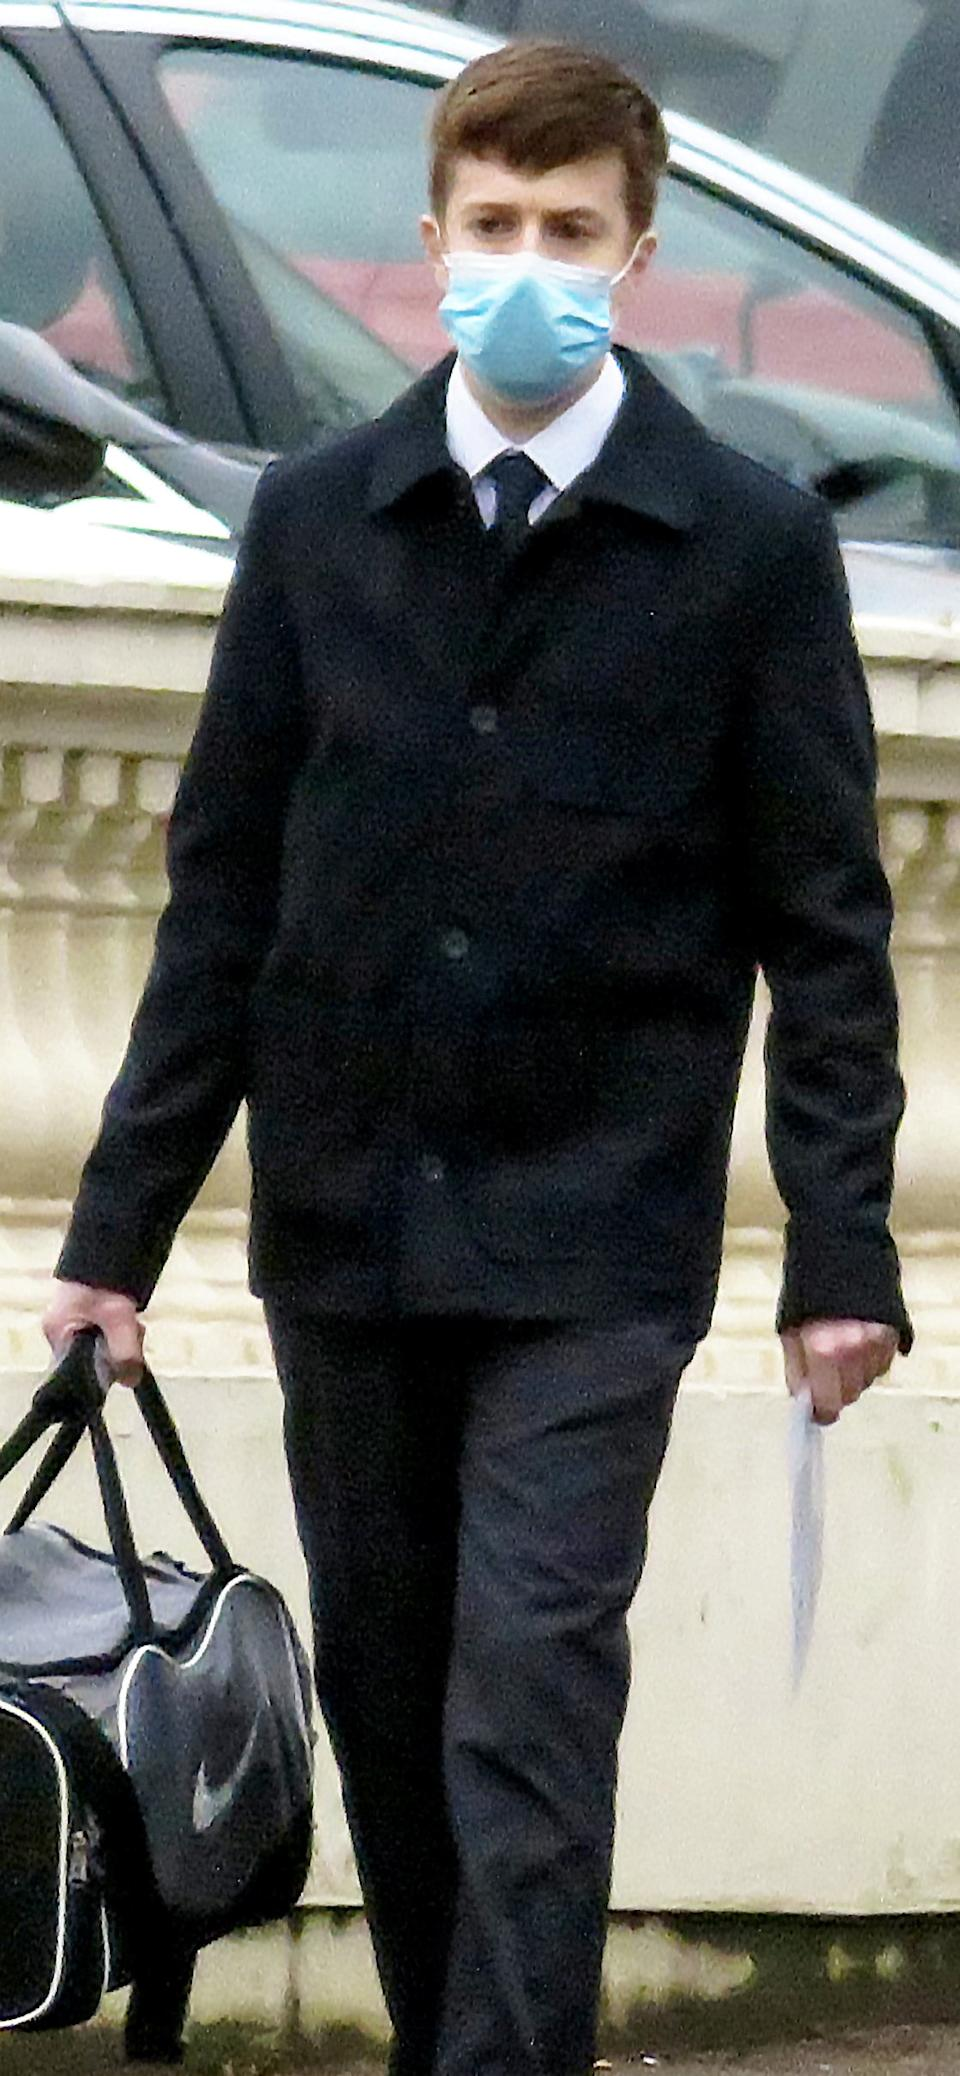 Simmons arriving at Warwick Crown Court on Friday(swns)